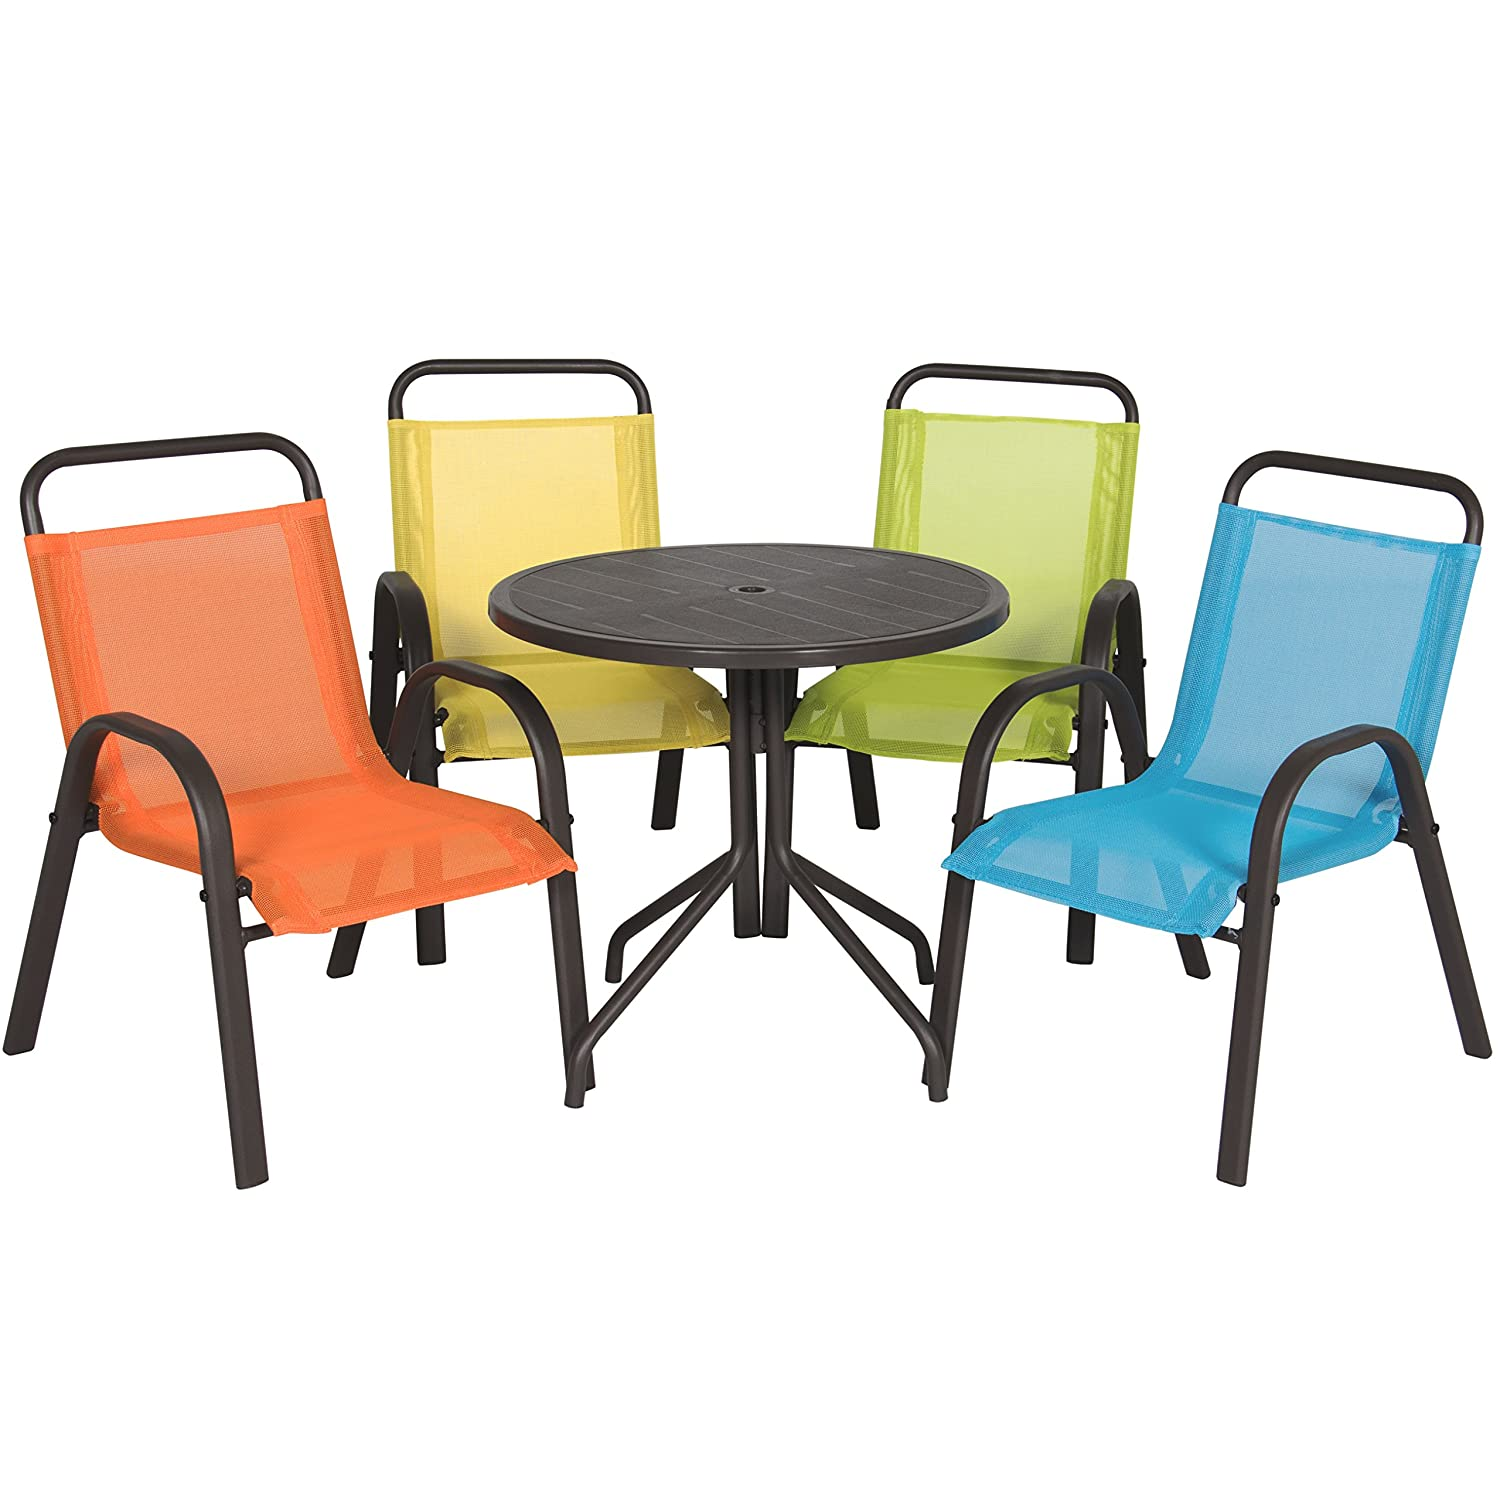 COSTWAY 5 Piece Junior Kids Table Chair Set, Multi Best Choice Products